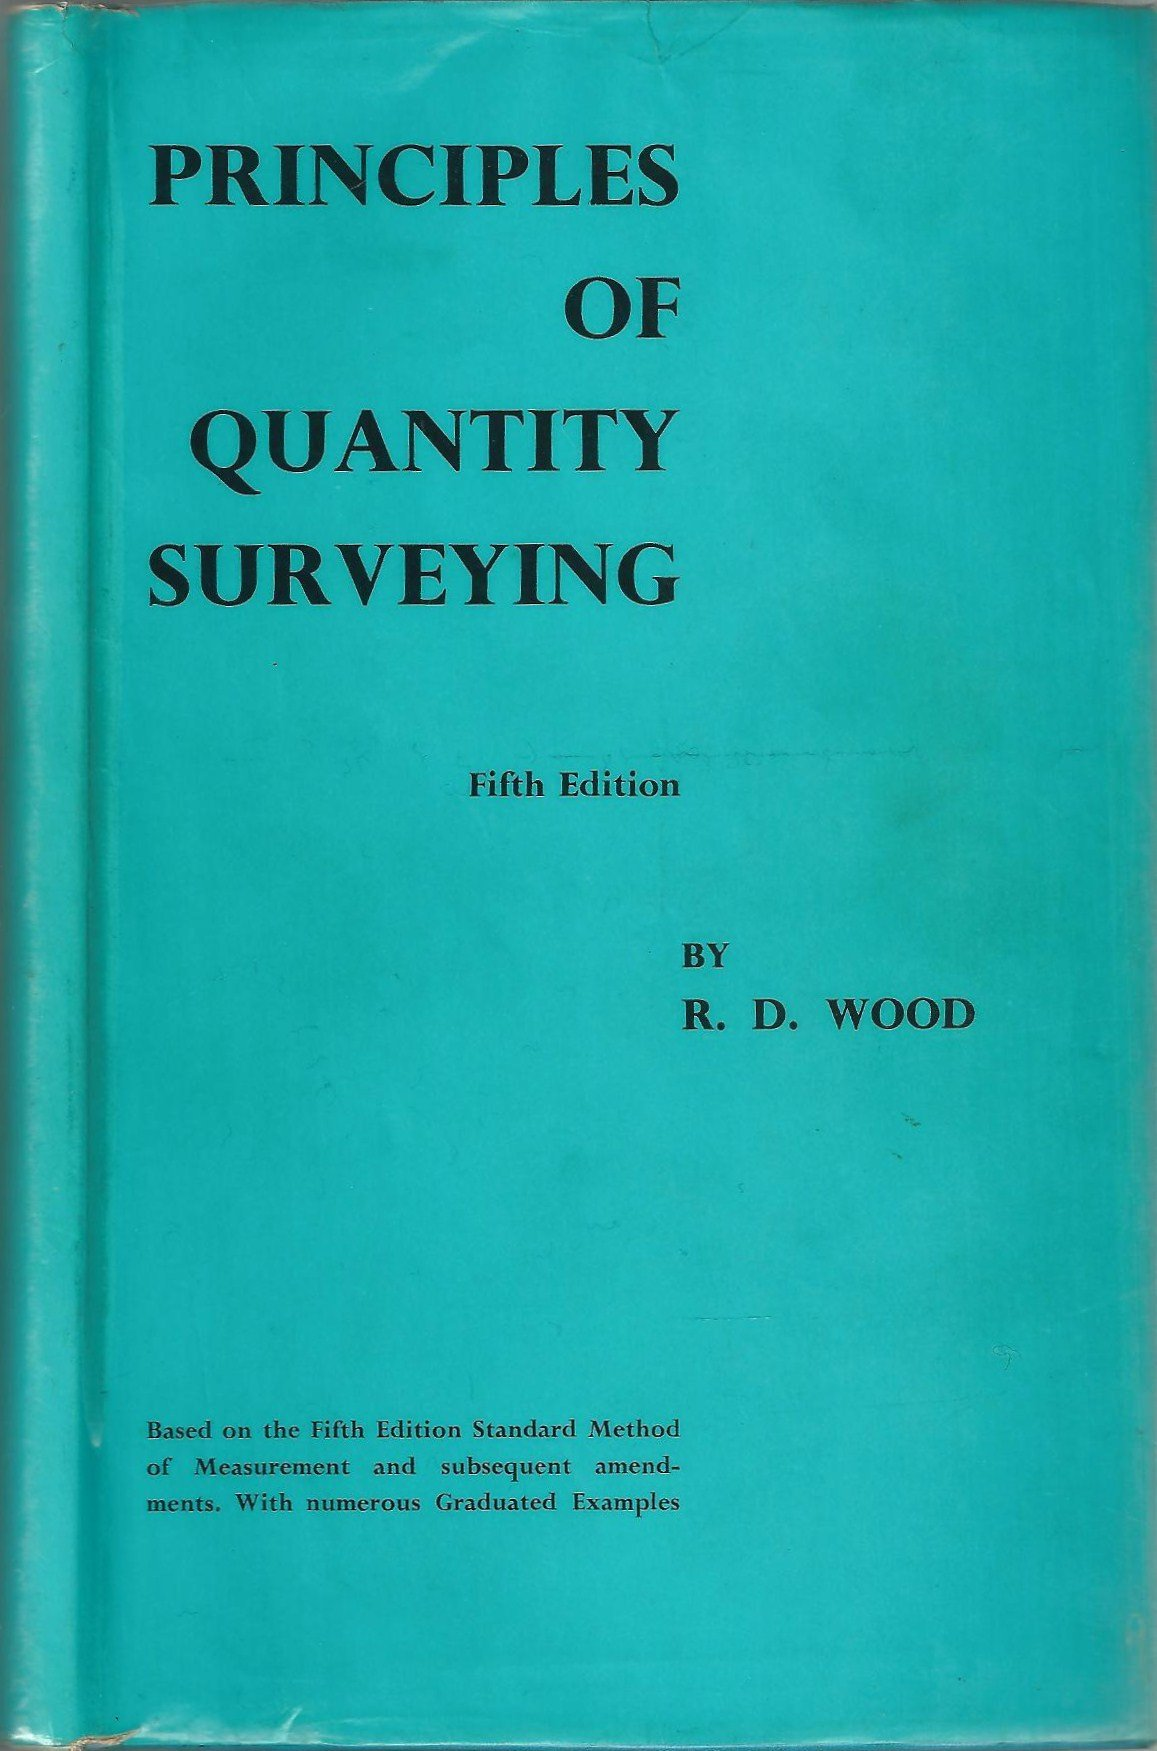 Principles of Quantity Surveying (Fifth Edition): Amazon co